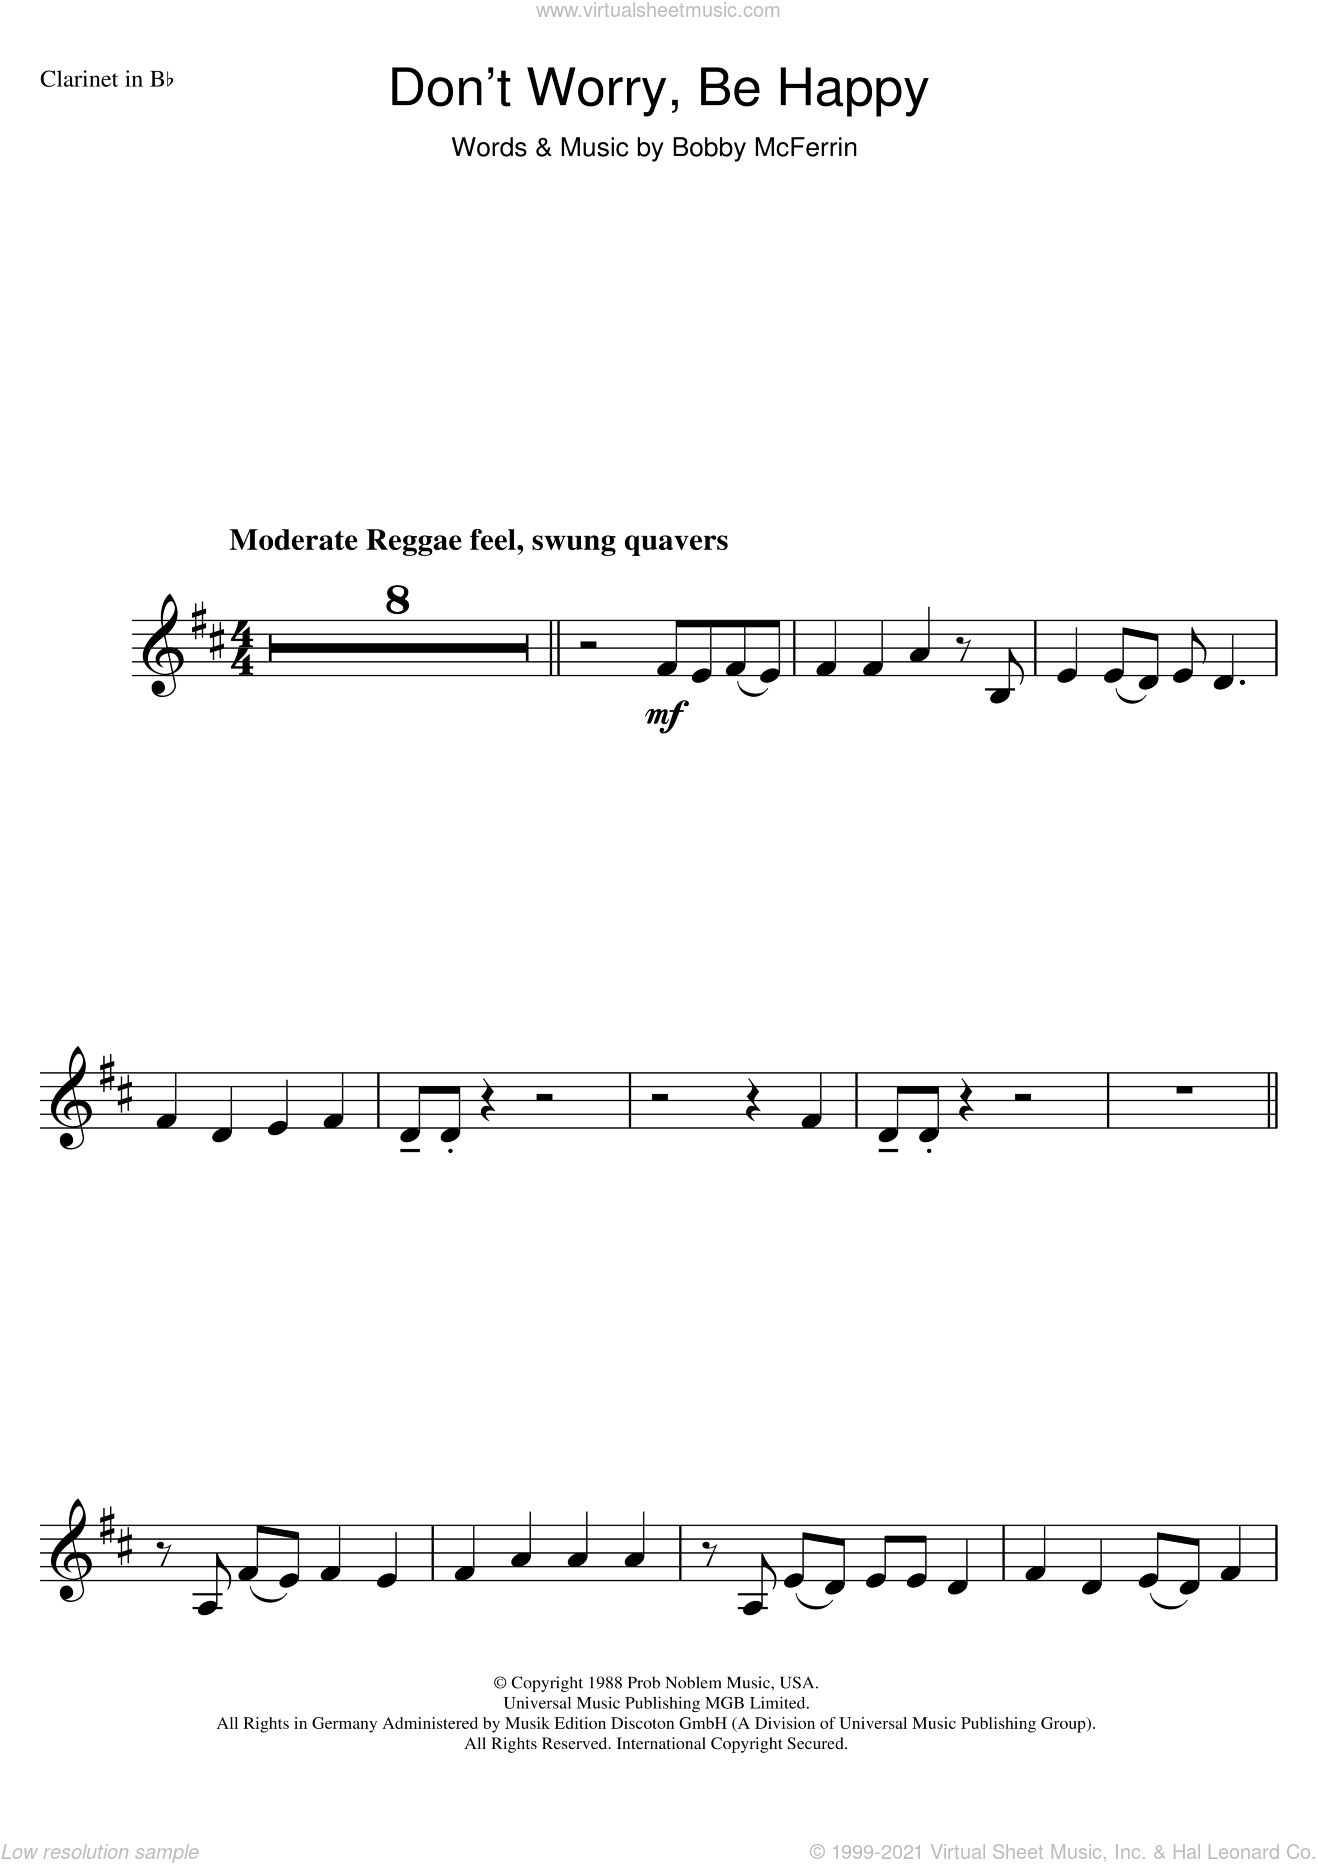 Don't Worry, Be Happy sheet music for clarinet solo by Bobby McFerrin. Score Image Preview.